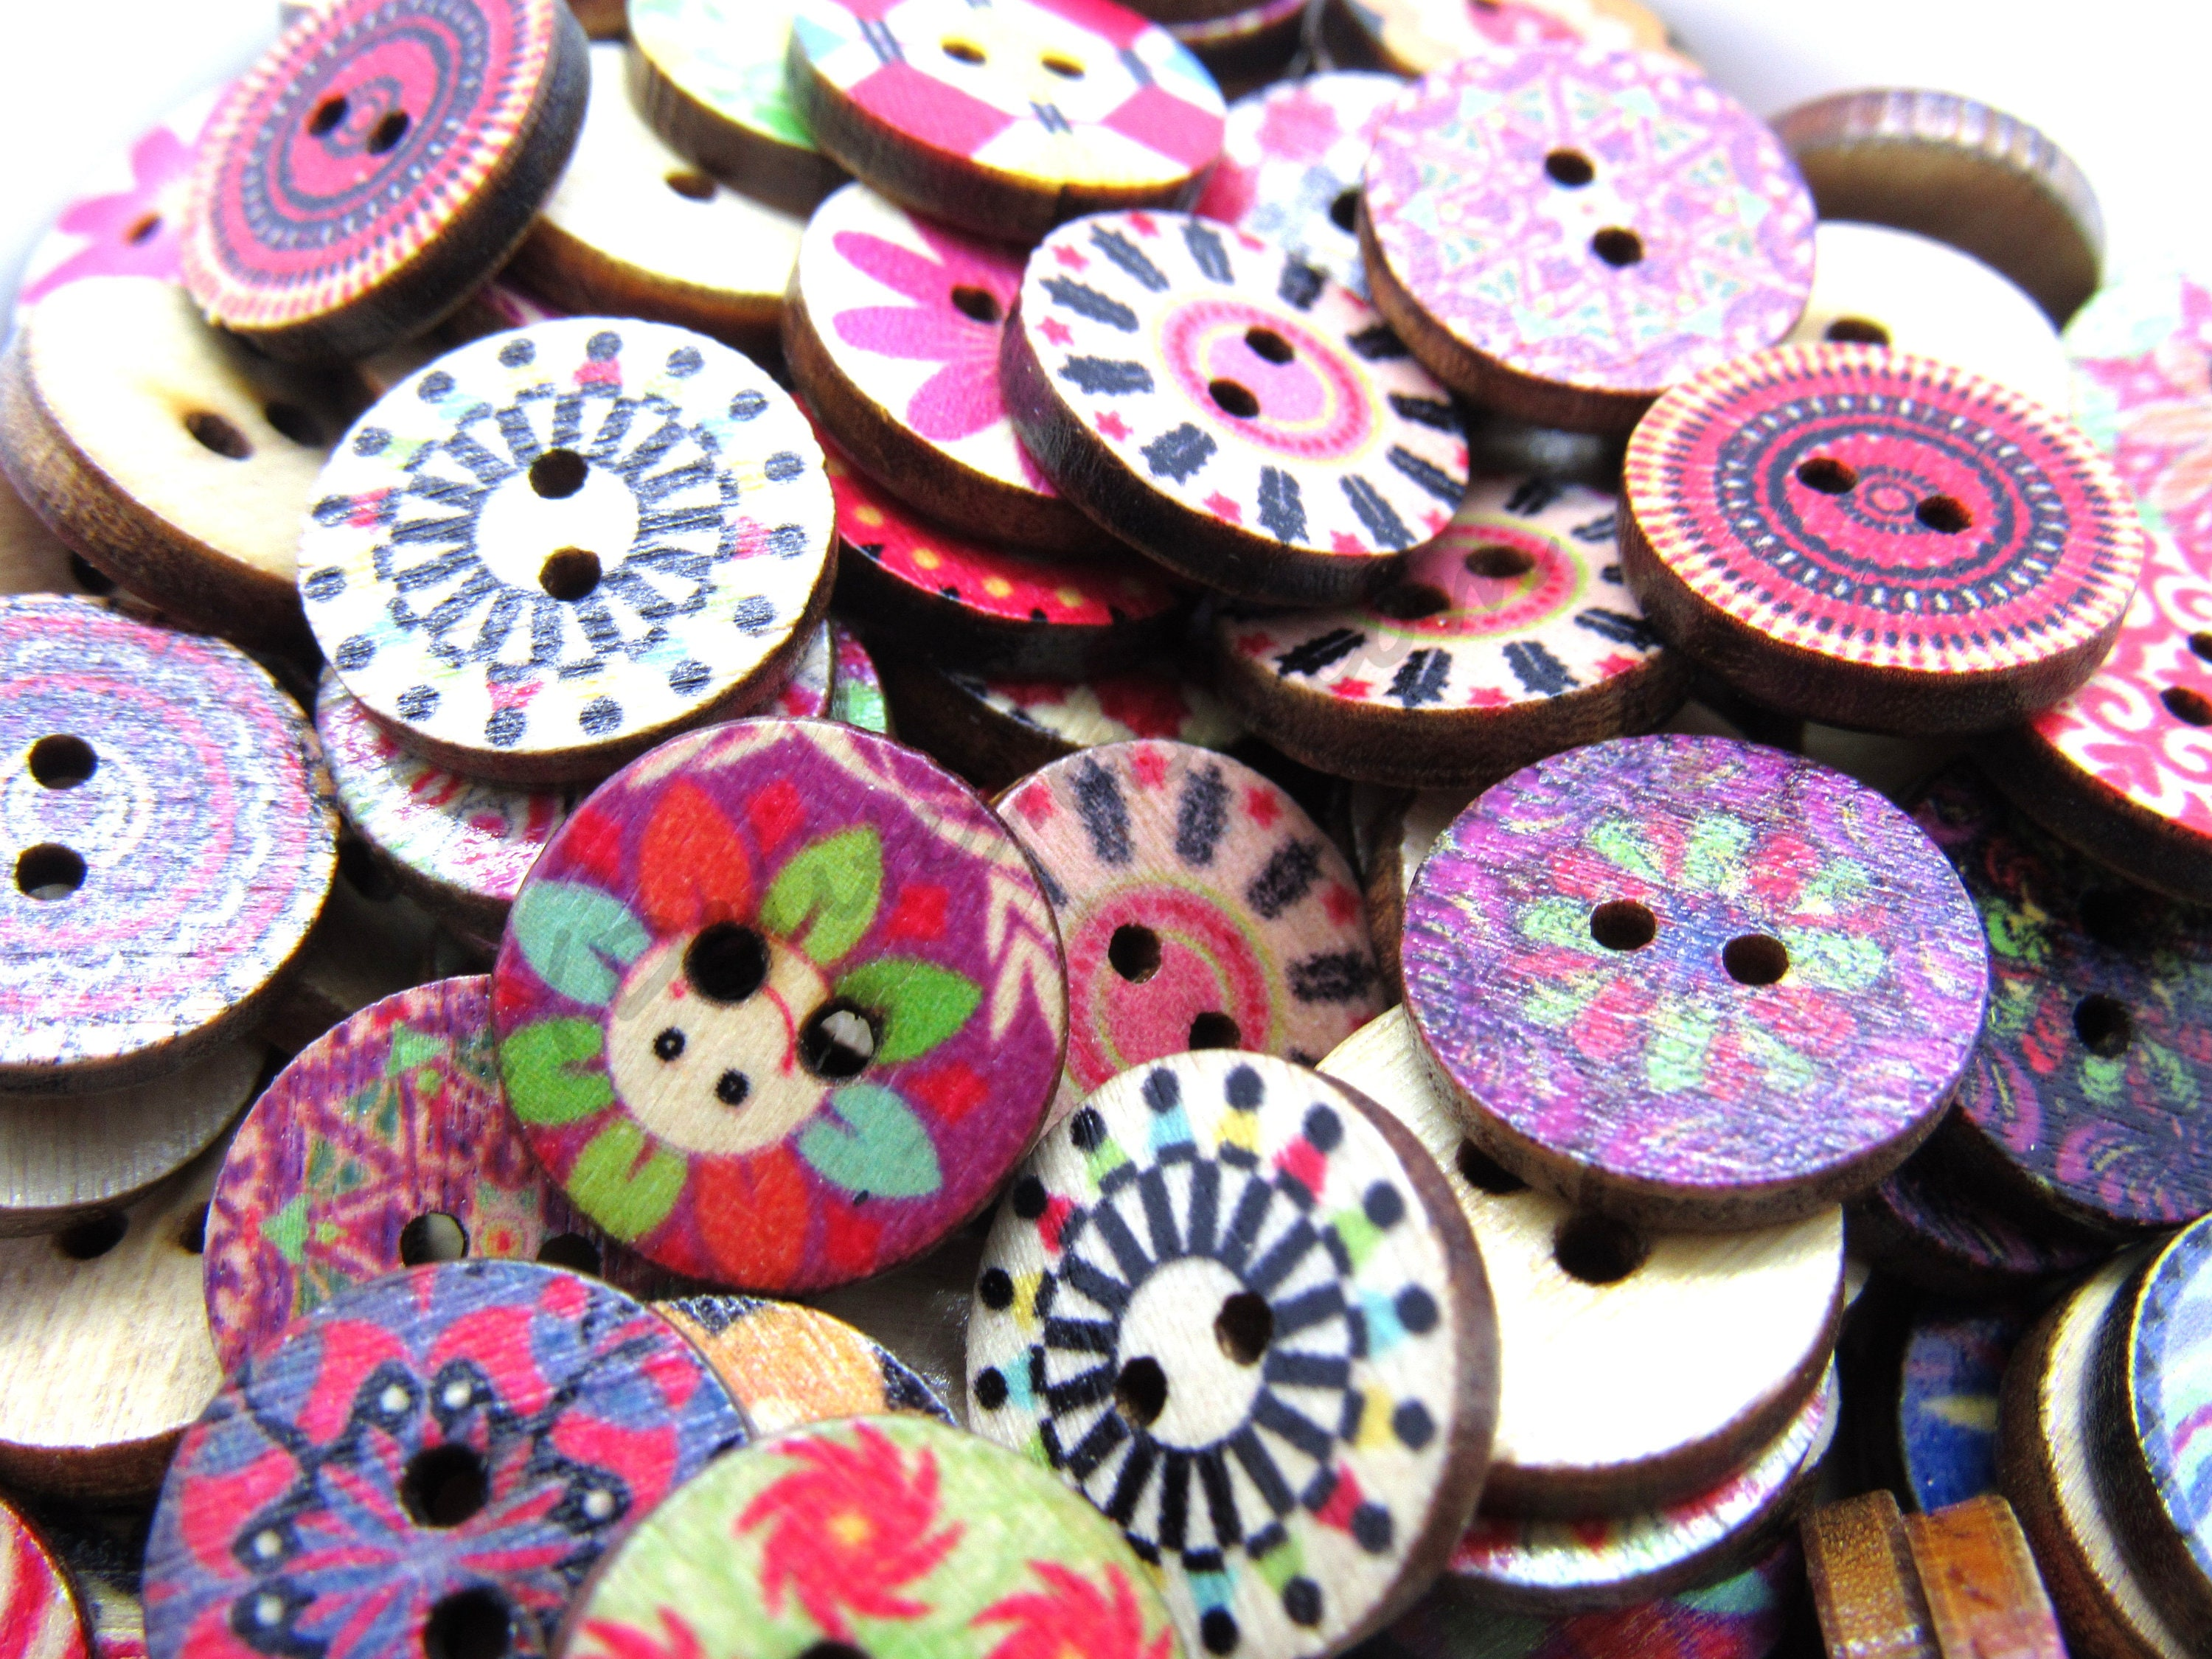 100 Bulk 2 Hole Flower Wooden Button Mixed for Sewing Scrapbooking DIY Craft